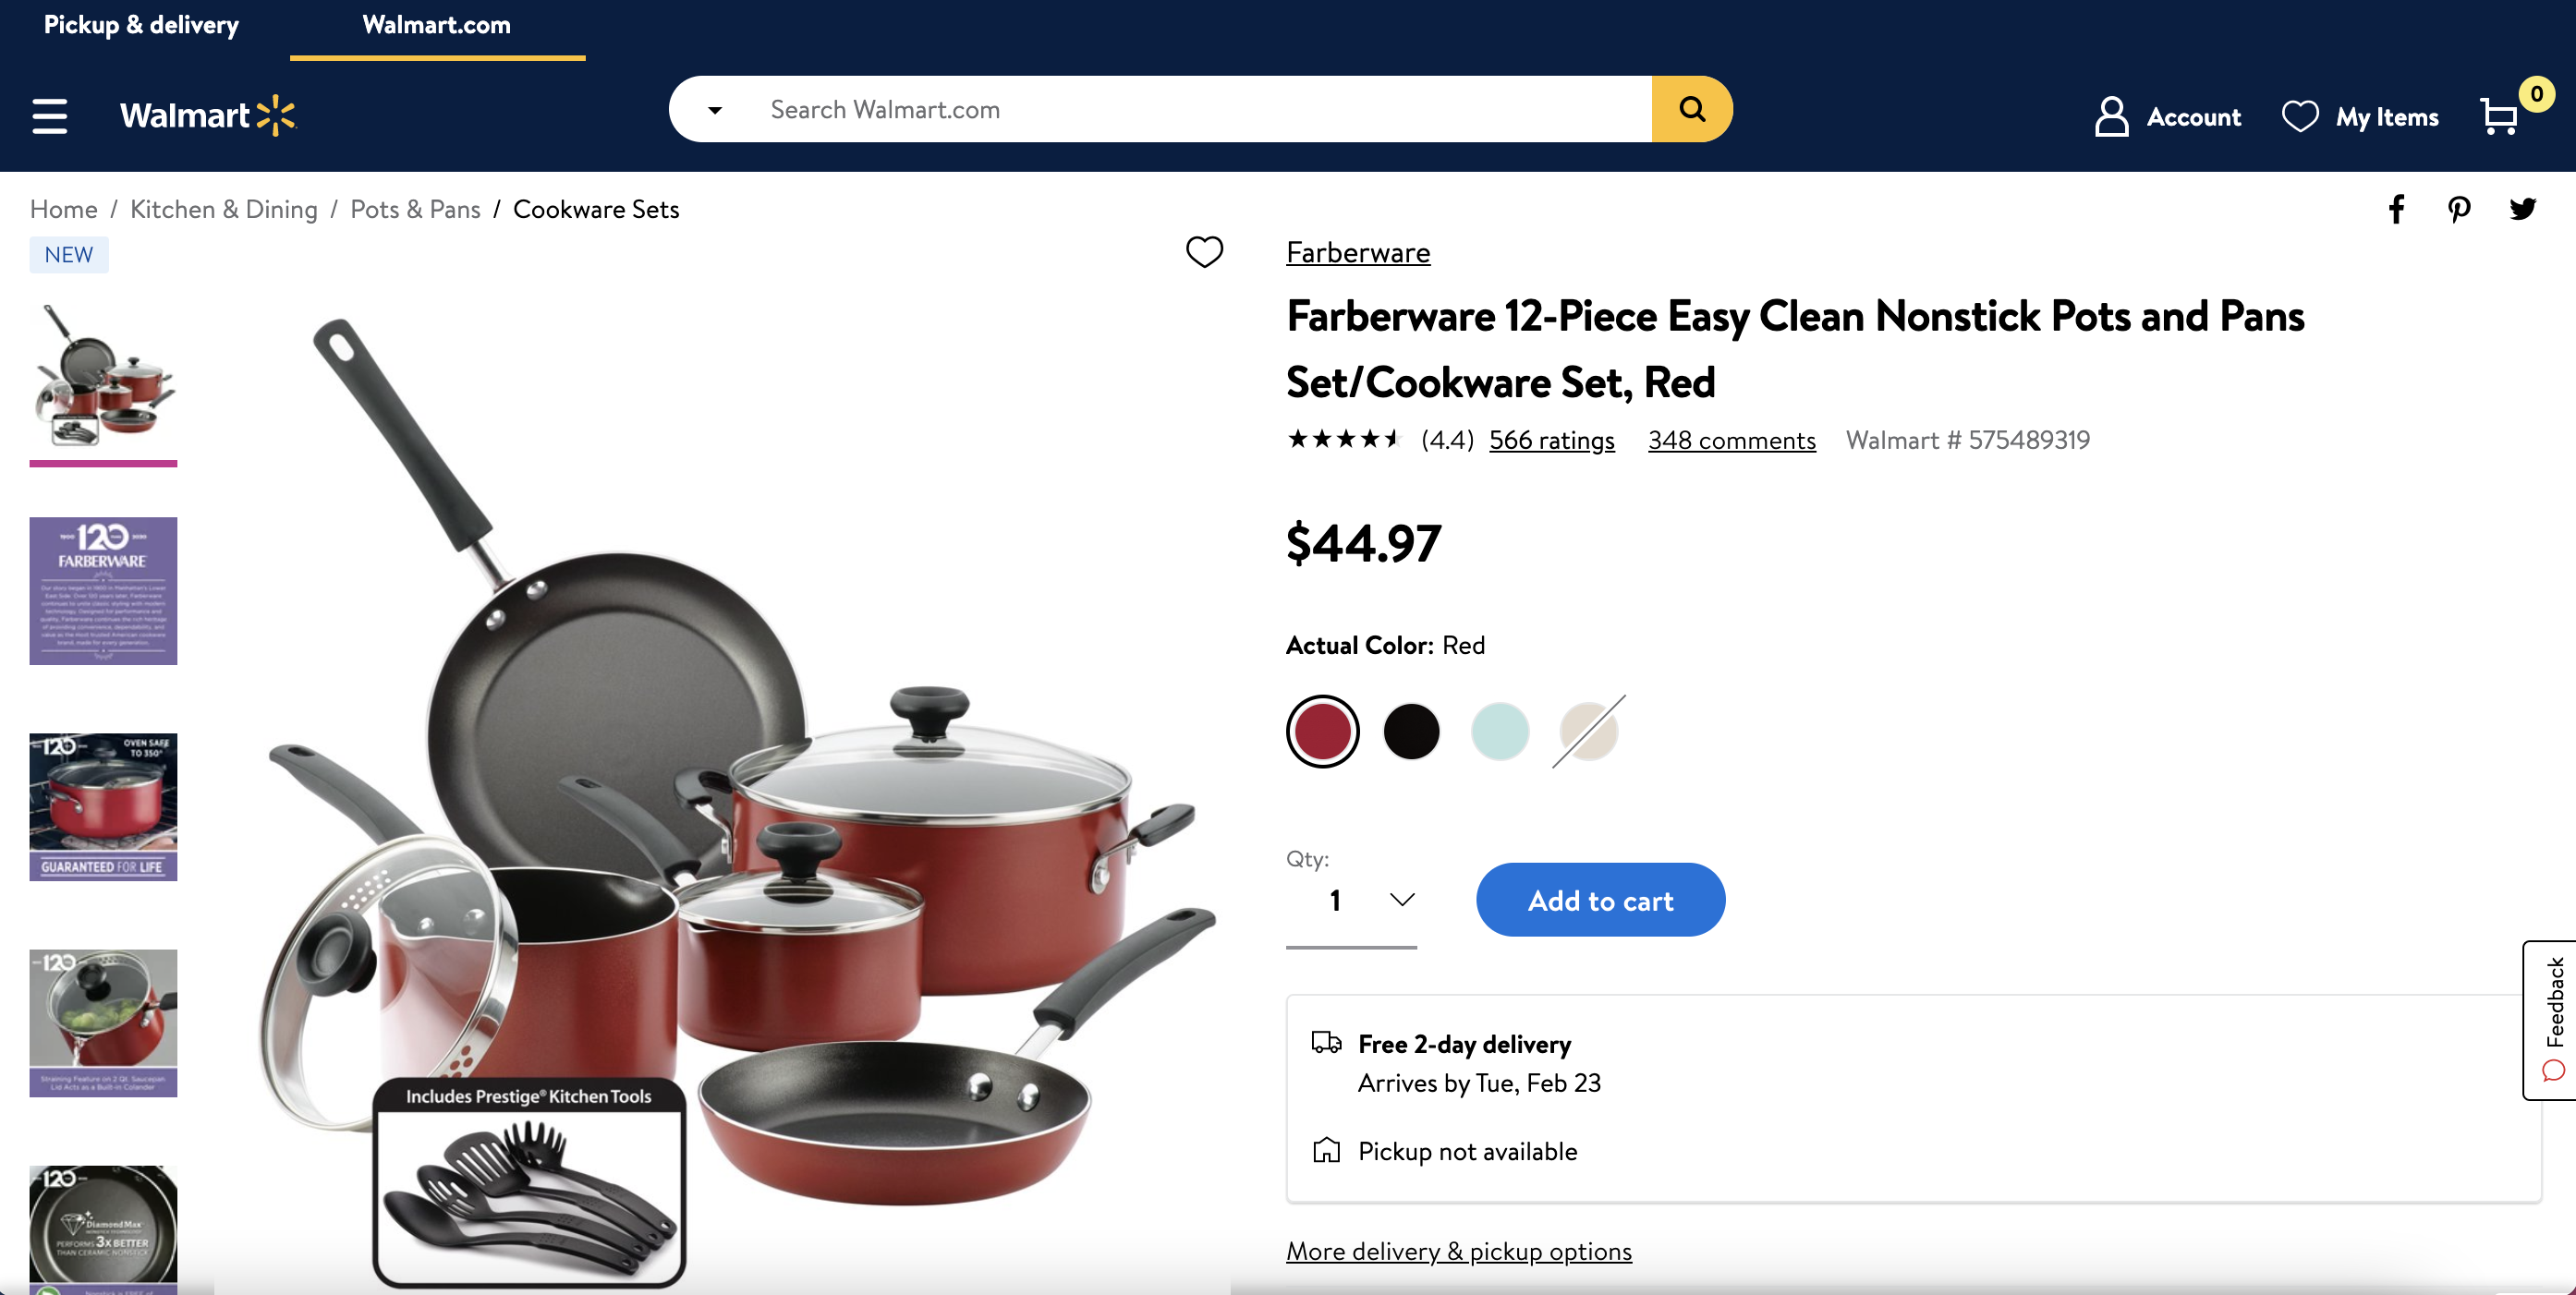 How to drive traffic to your Walmart listing: example of a Walmart listing for cookware